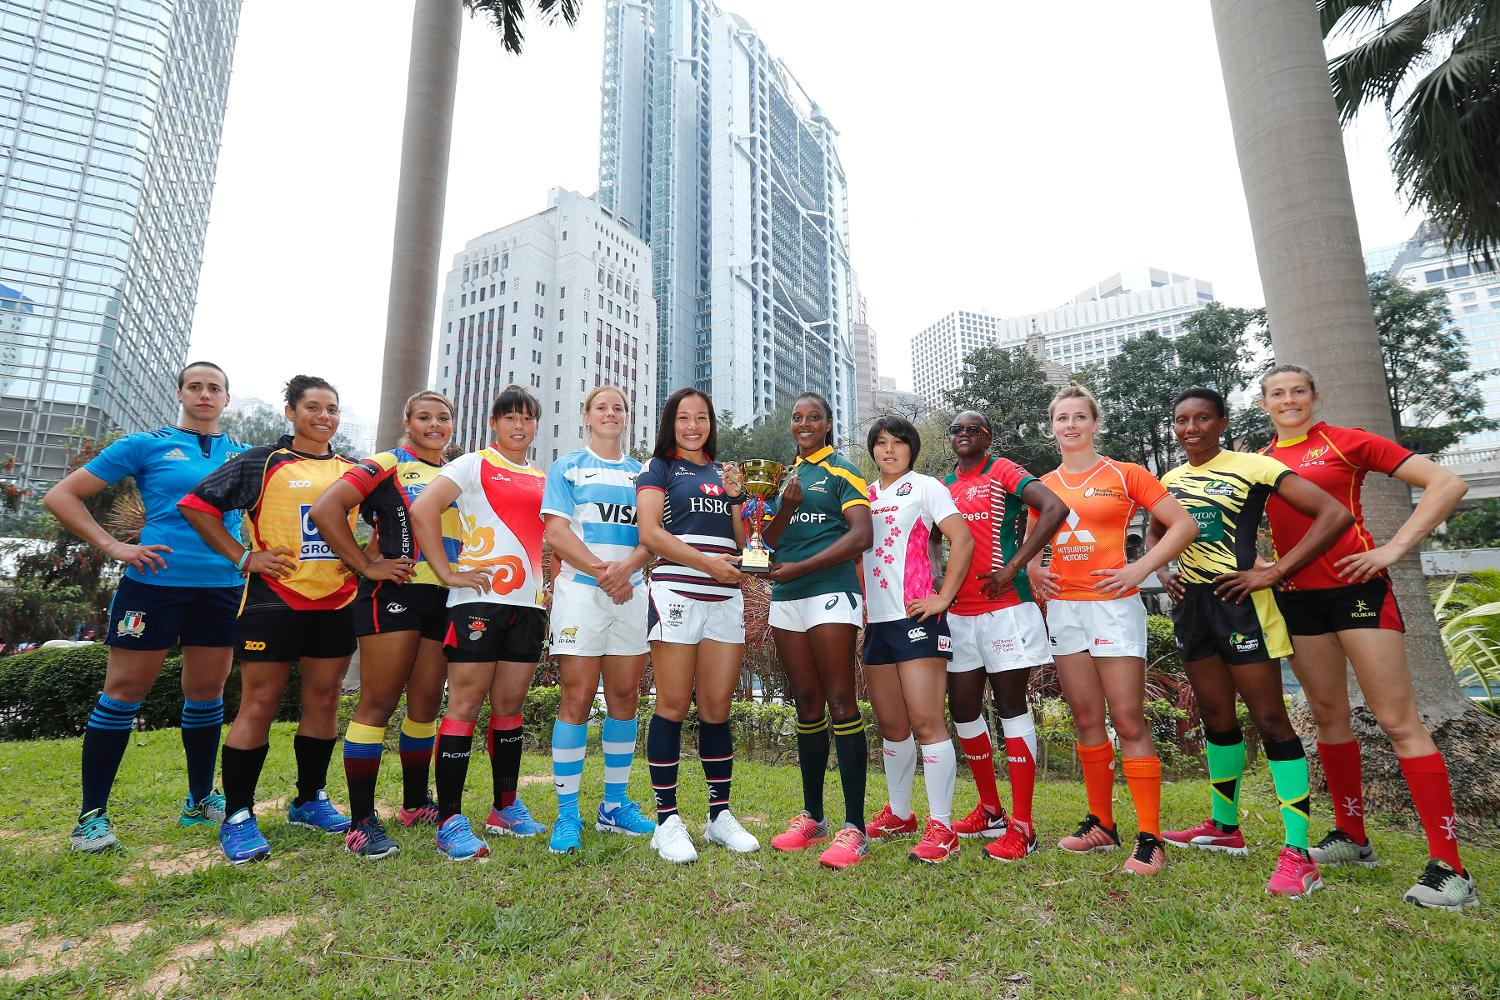 HSBC Sevens Qualifier Hong Kong - Women's